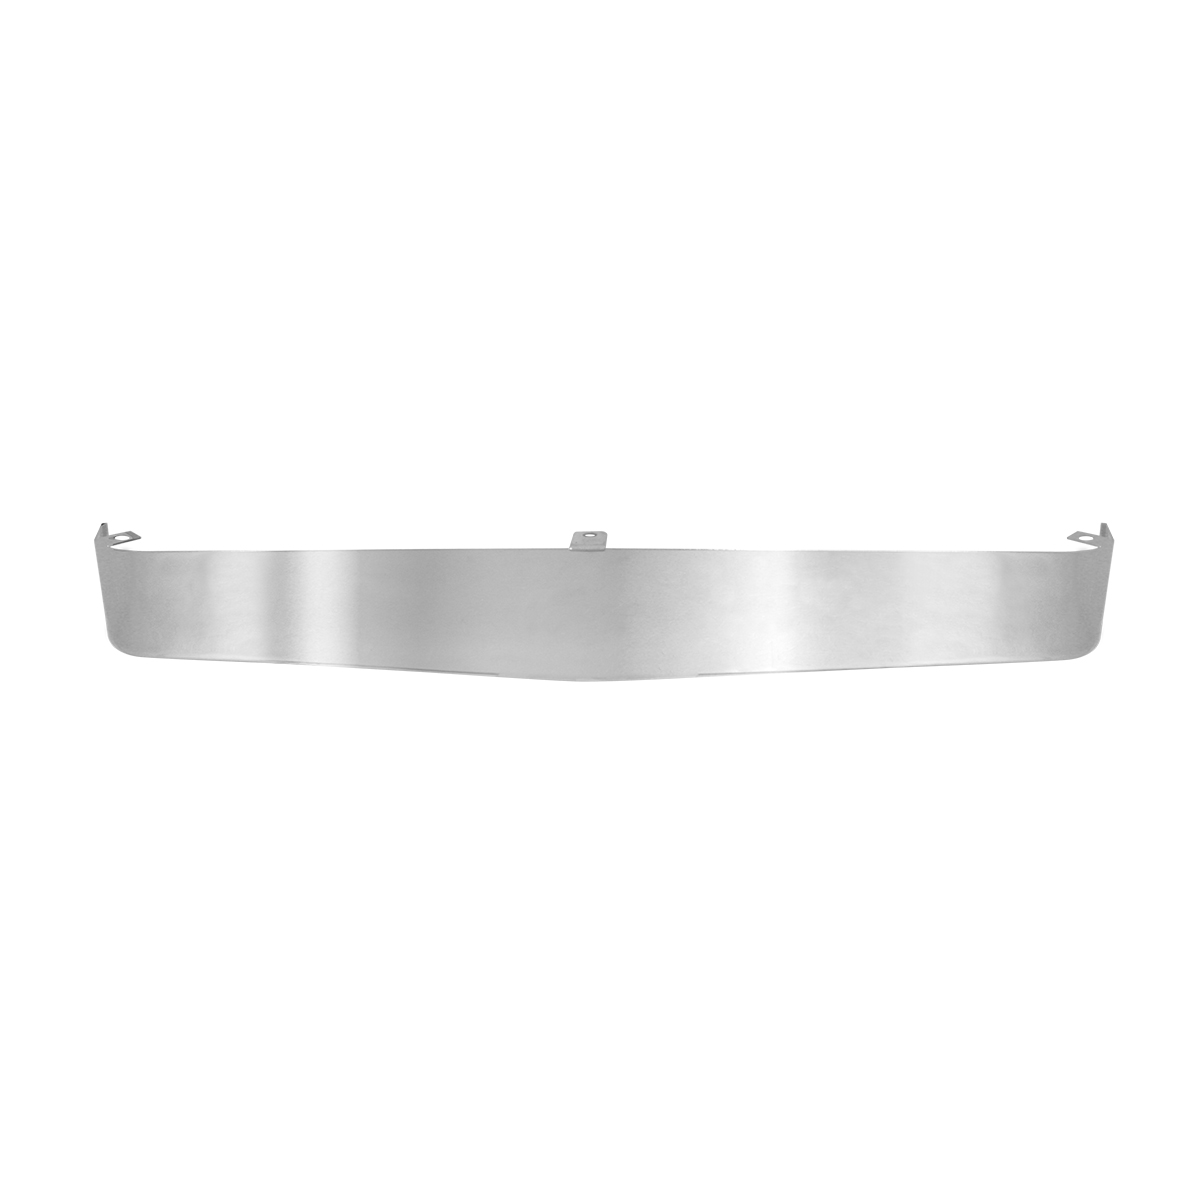 "96901 Headlight Visor 15"" (L)"